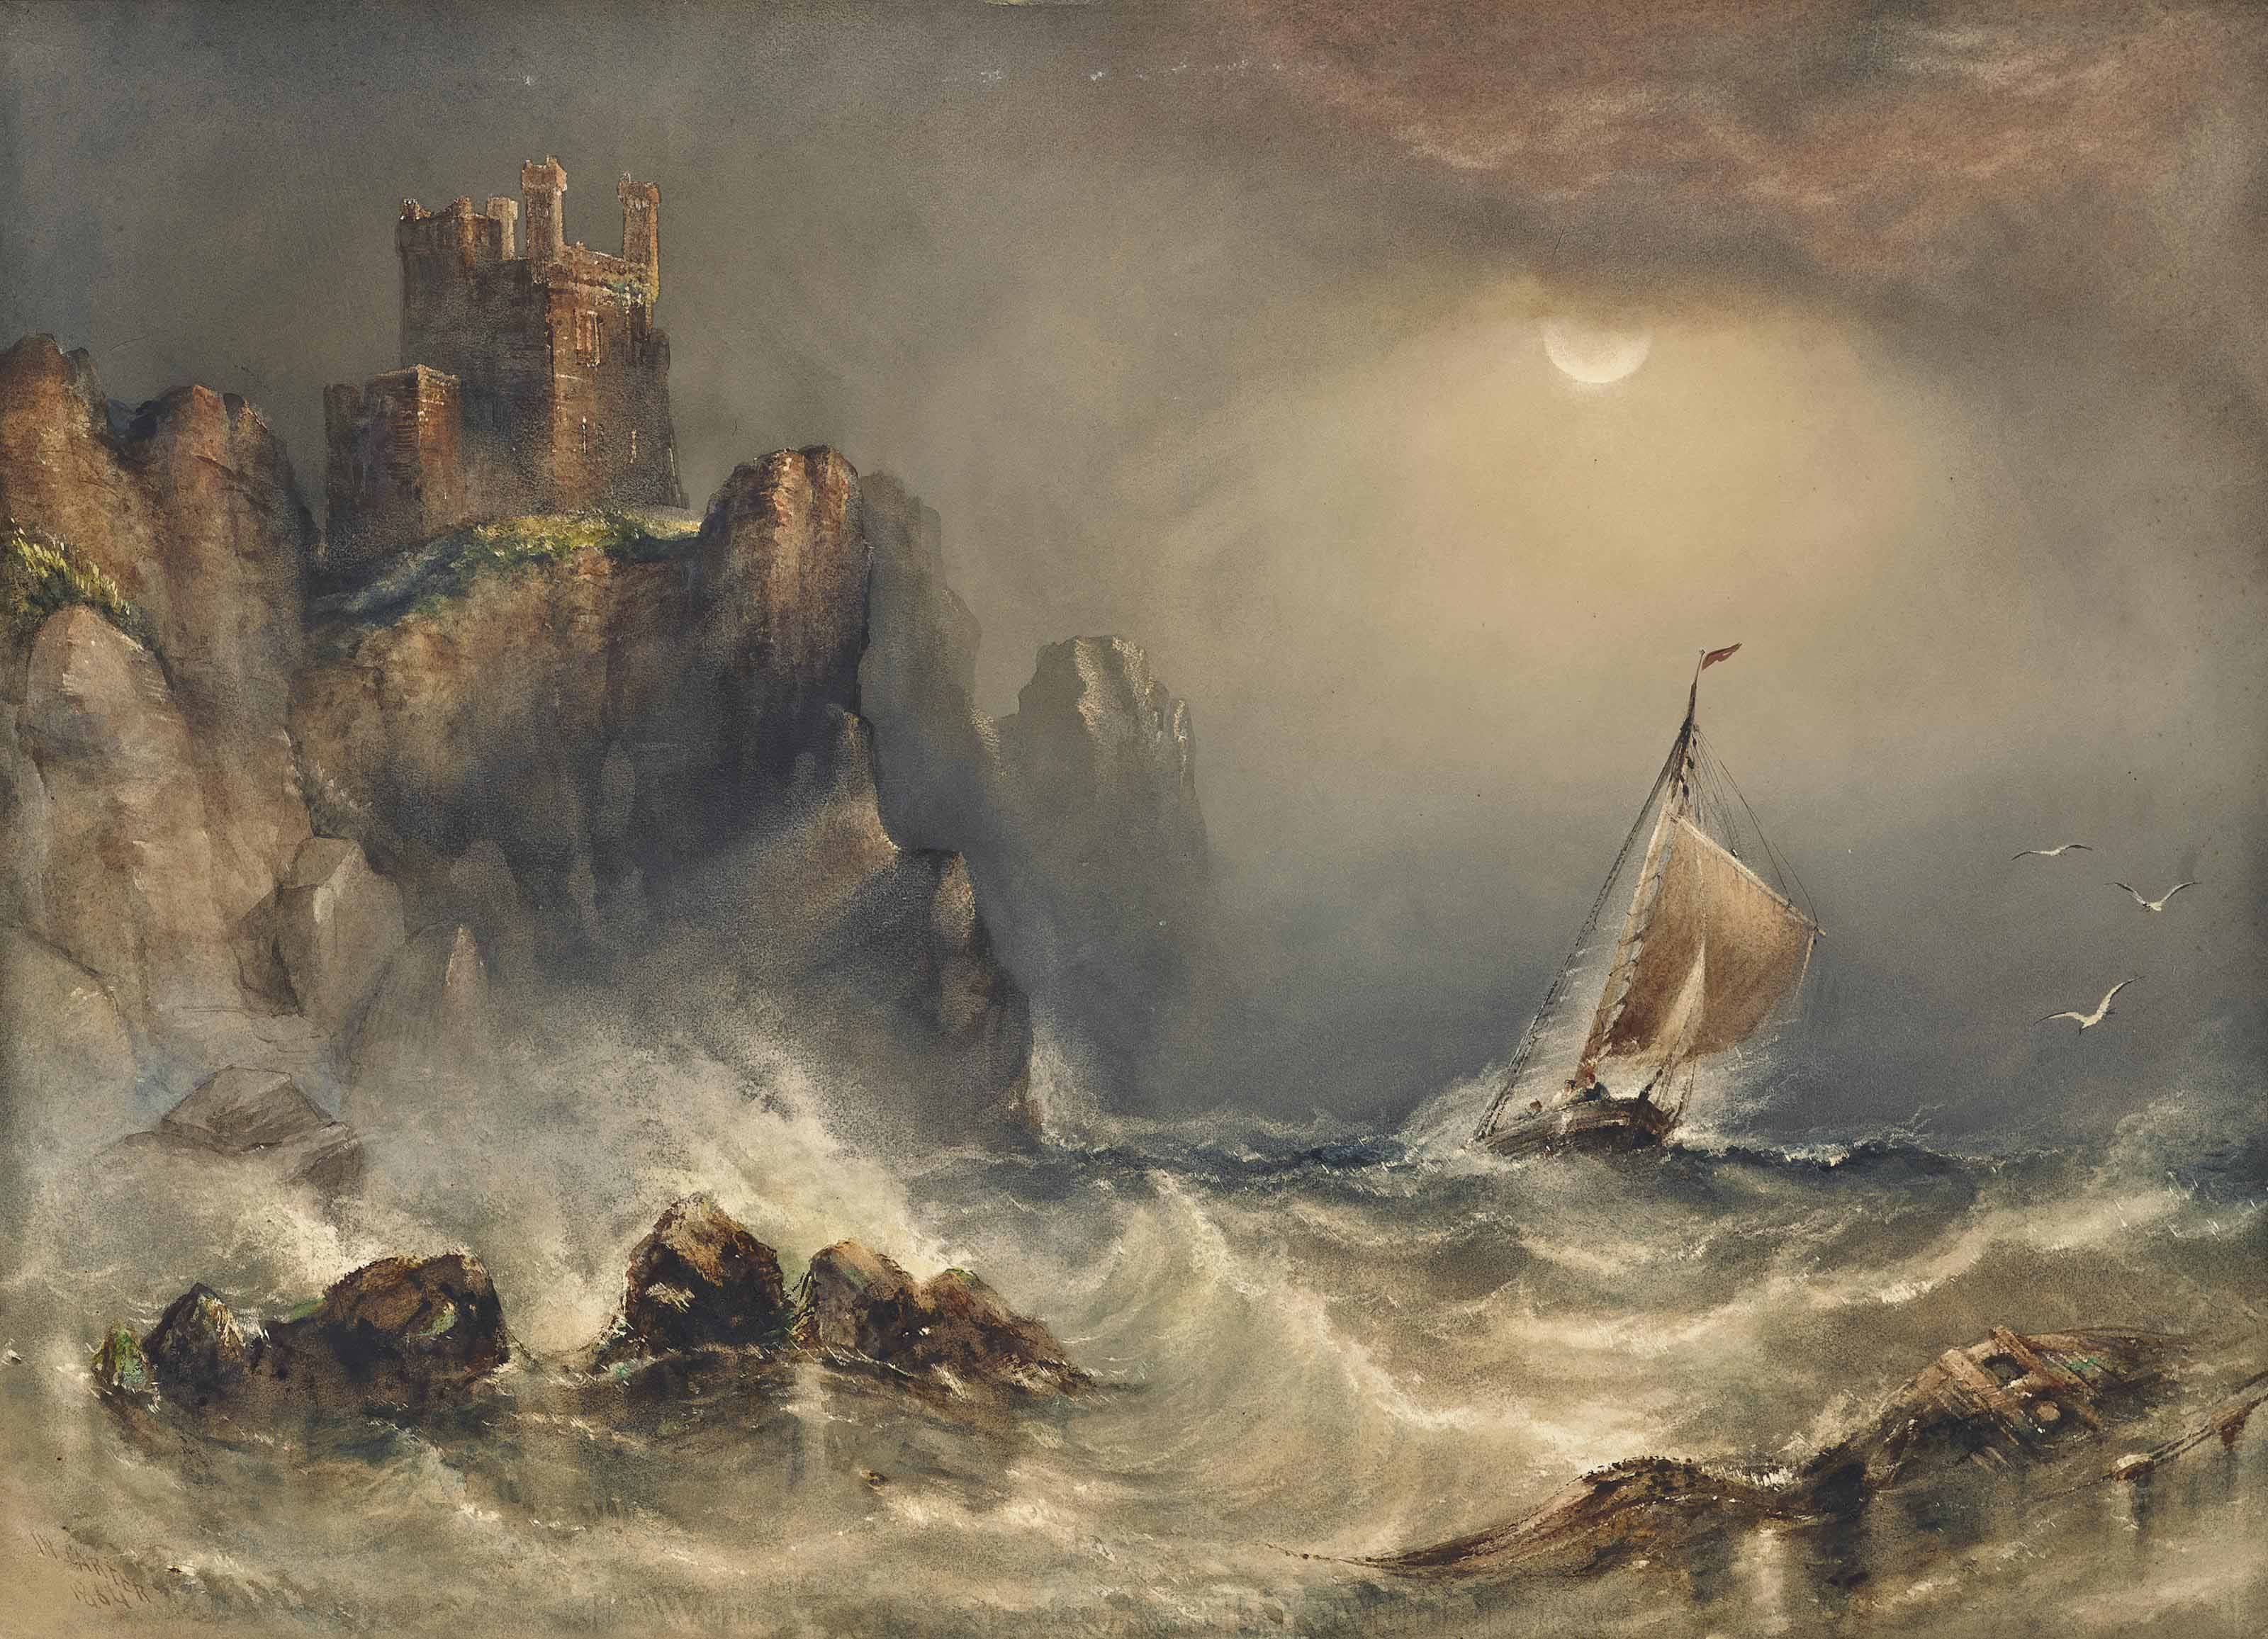 Ship in stormy sea under moonlight, before a castle